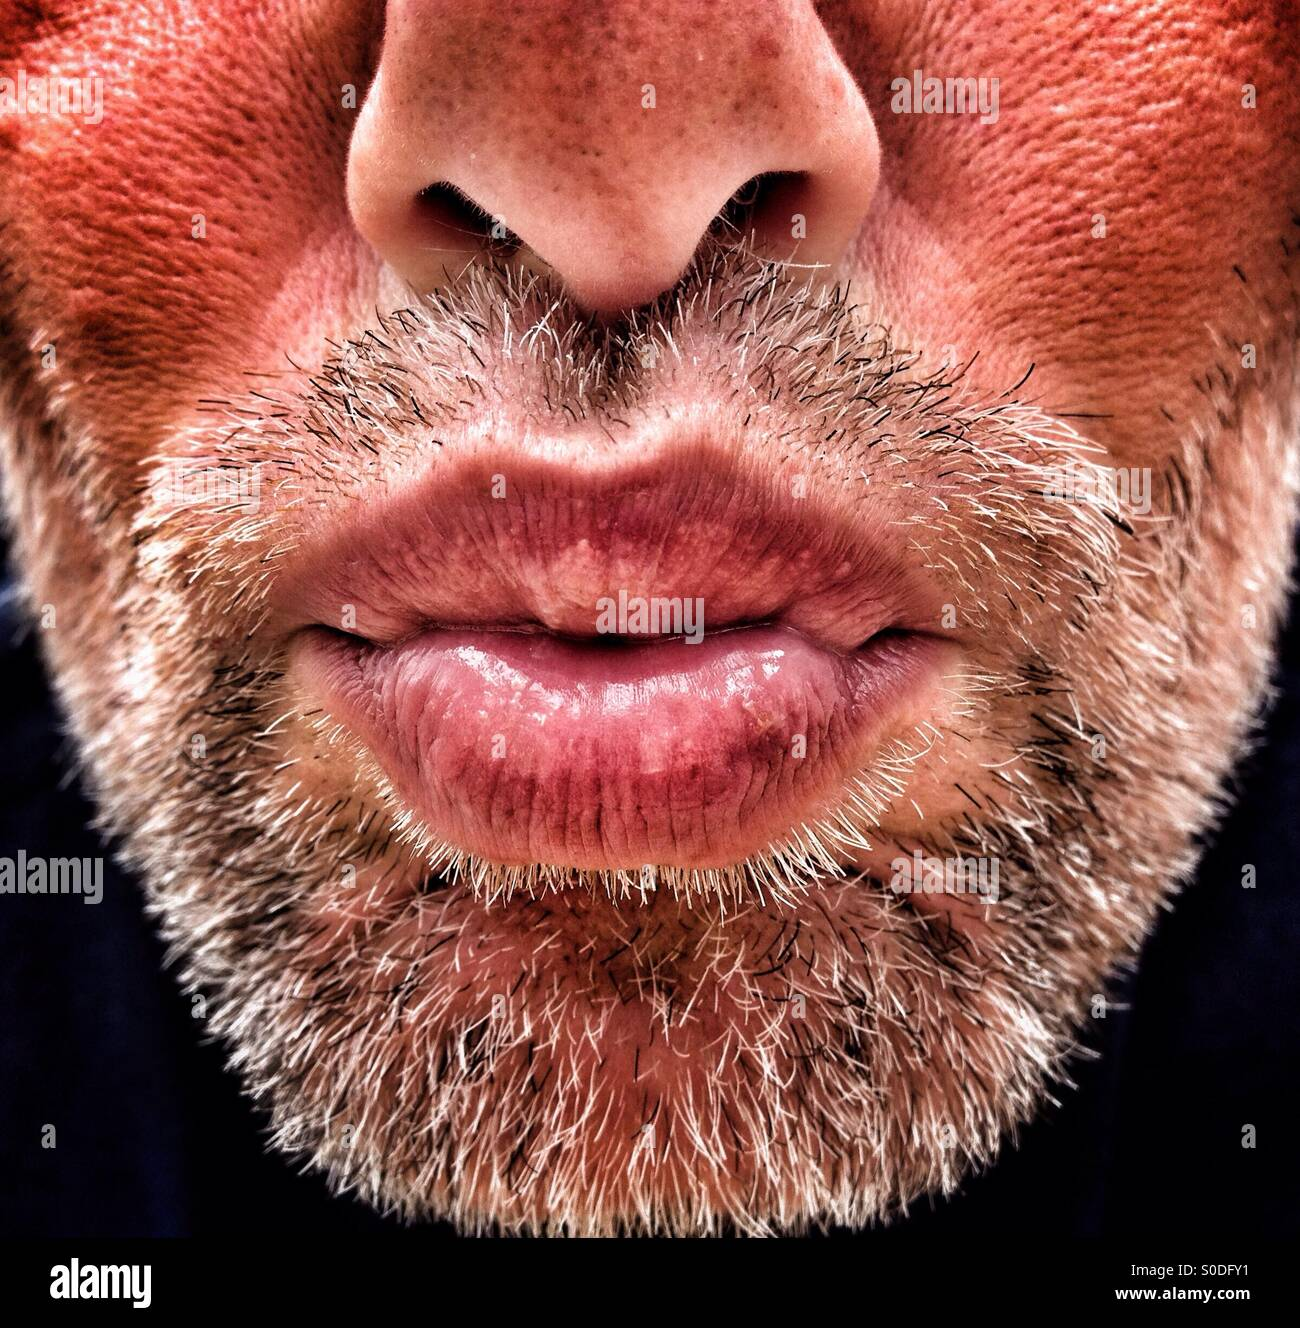 Adult male with beard blowing kiss Stock Photo